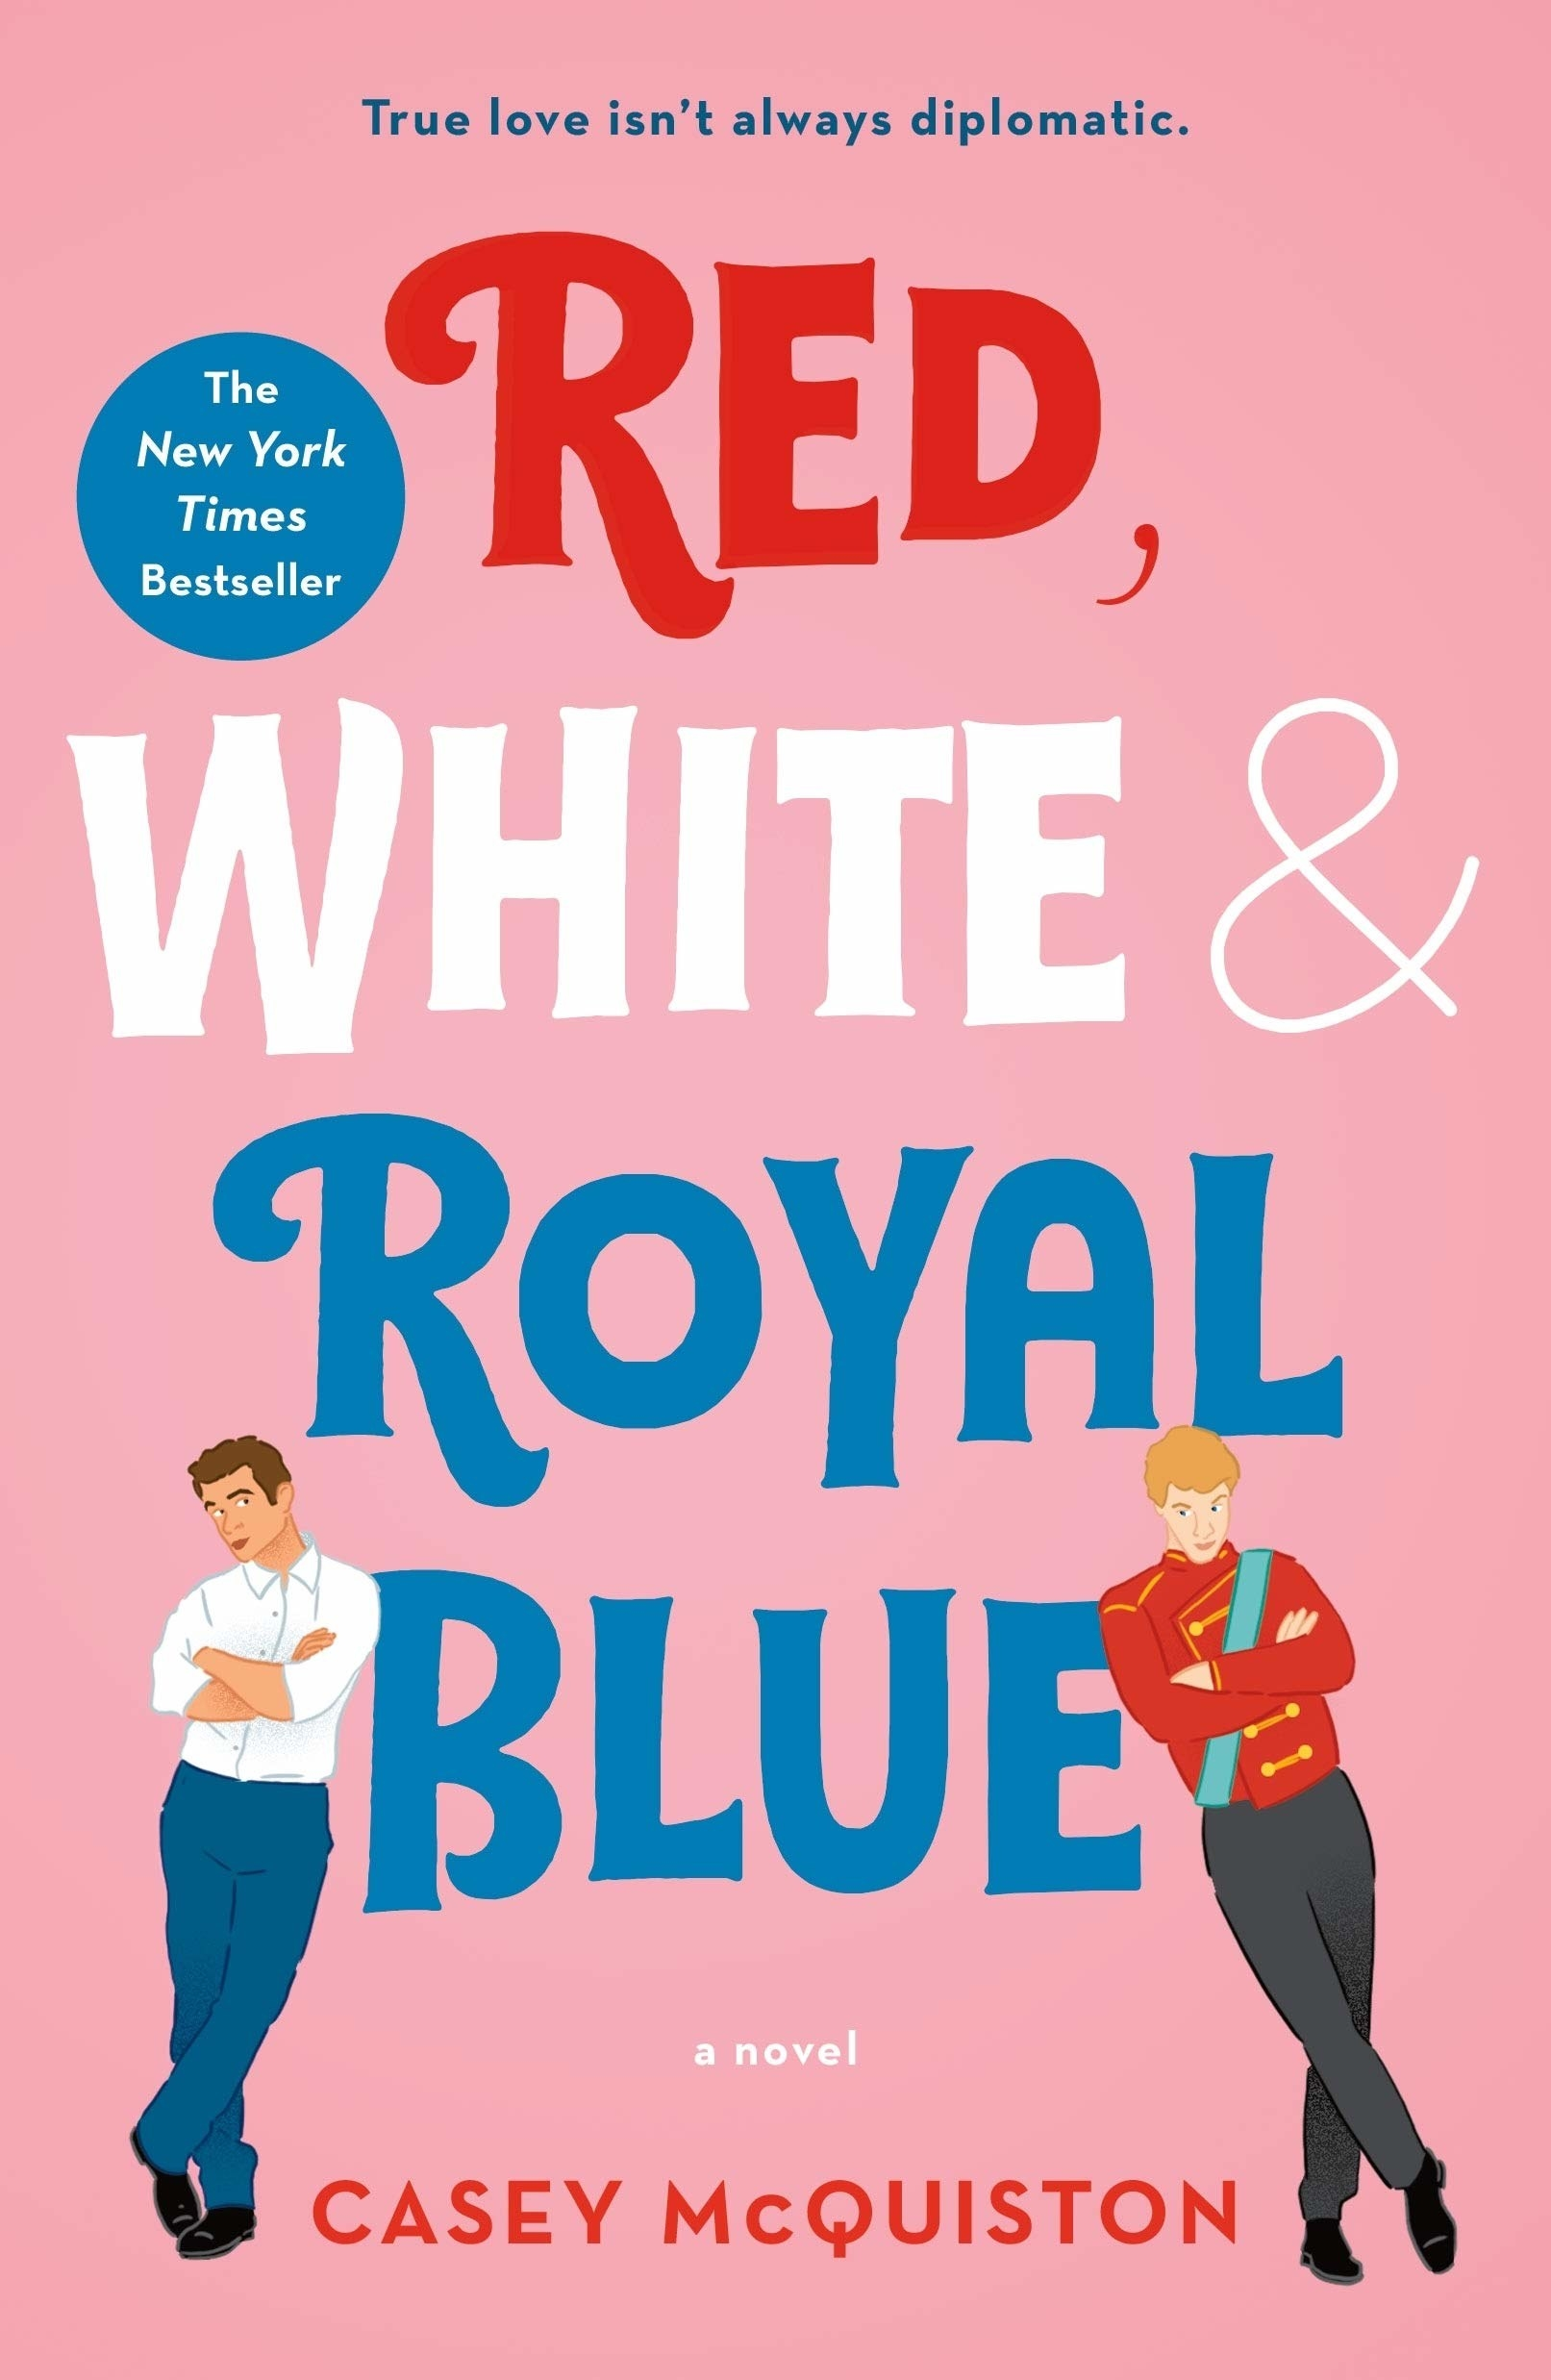 """Two men, one in royal garb, lean against the word """"Blue"""" in the title of the novel"""